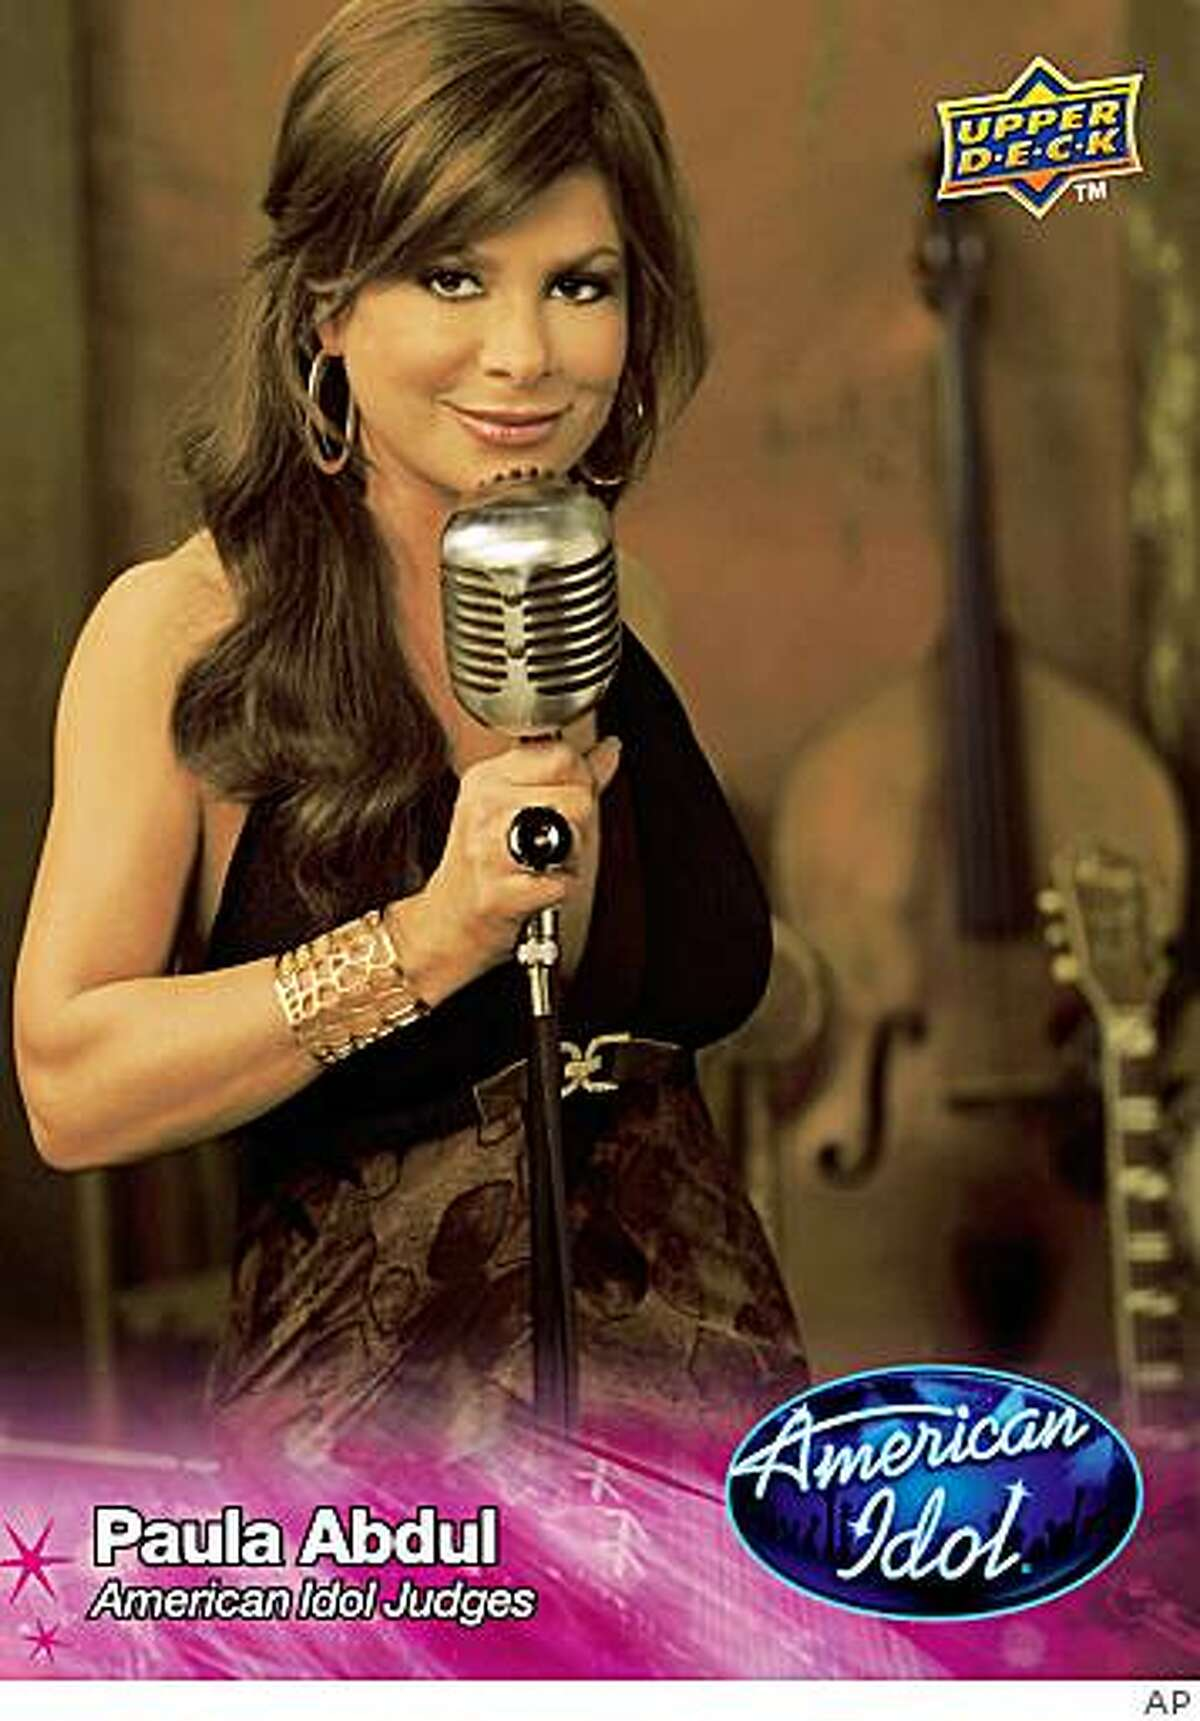 """In this trading card image released by FremantleMedia and trading card publisher Upper Deck, an """"American Idol"""" trading card featuring judge Paula Abdul, is shown."""